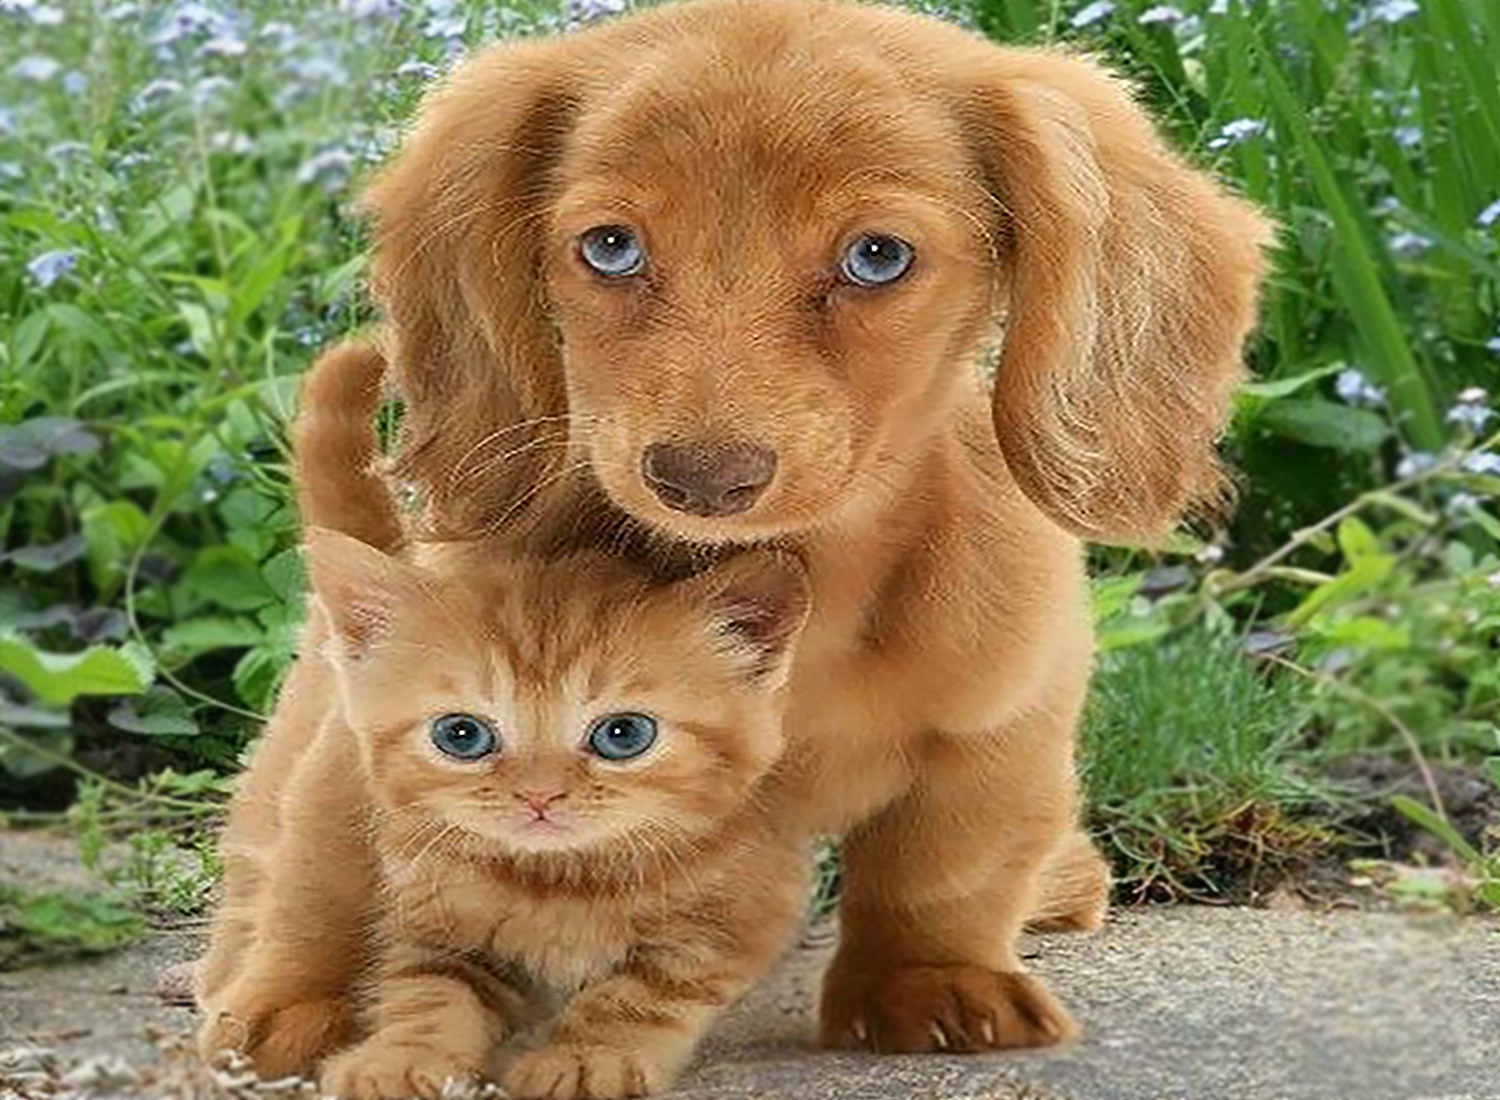 Kitten vs Puppy: Which Is Better? Which Would Suit You Best?